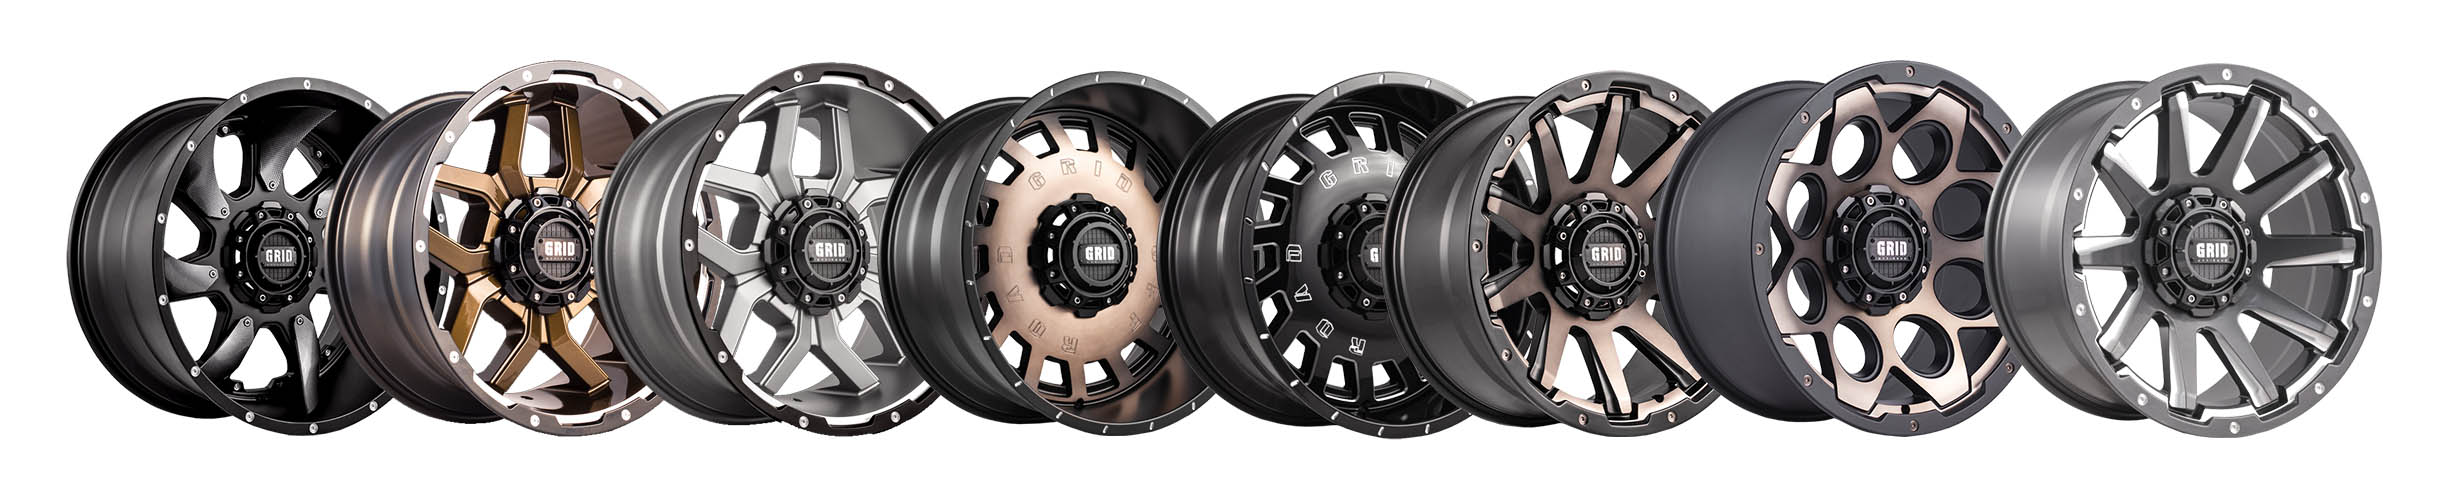 FORGED wheels with Rims Online pictures.